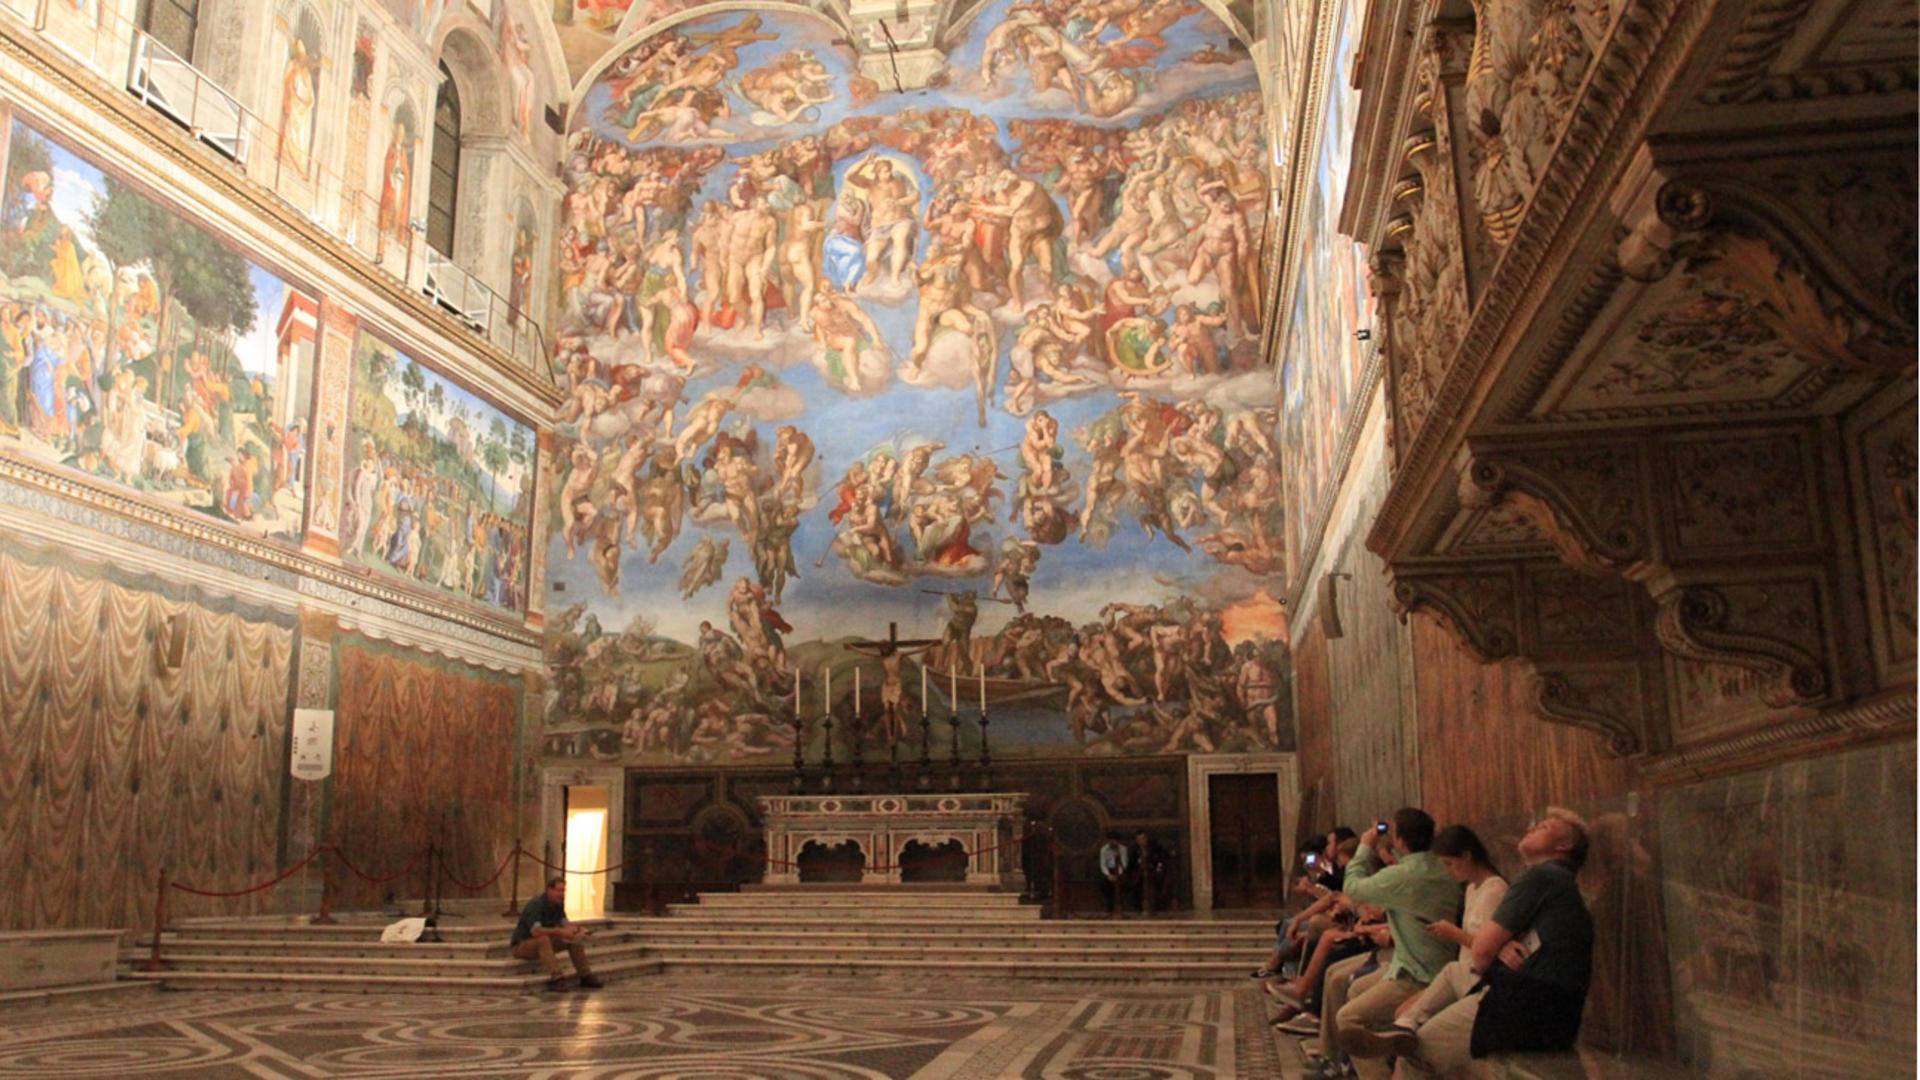 students sit on a bench and look at art in a cathedral